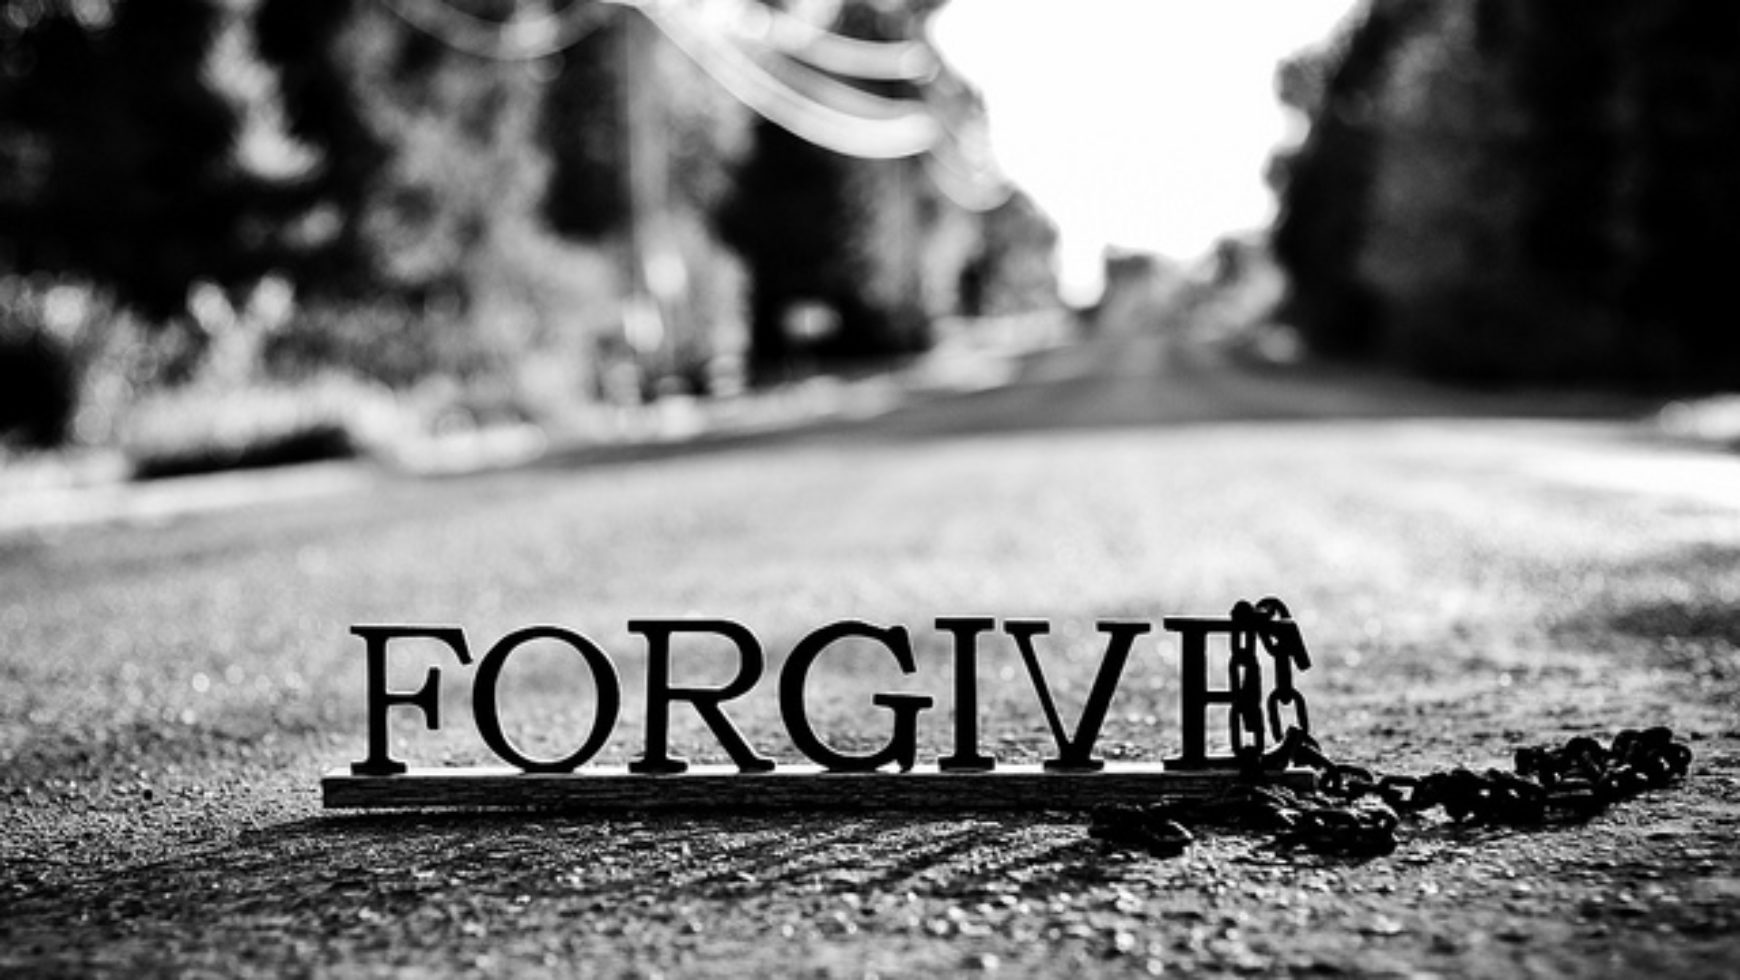 Forgiveness: An Act and a Process